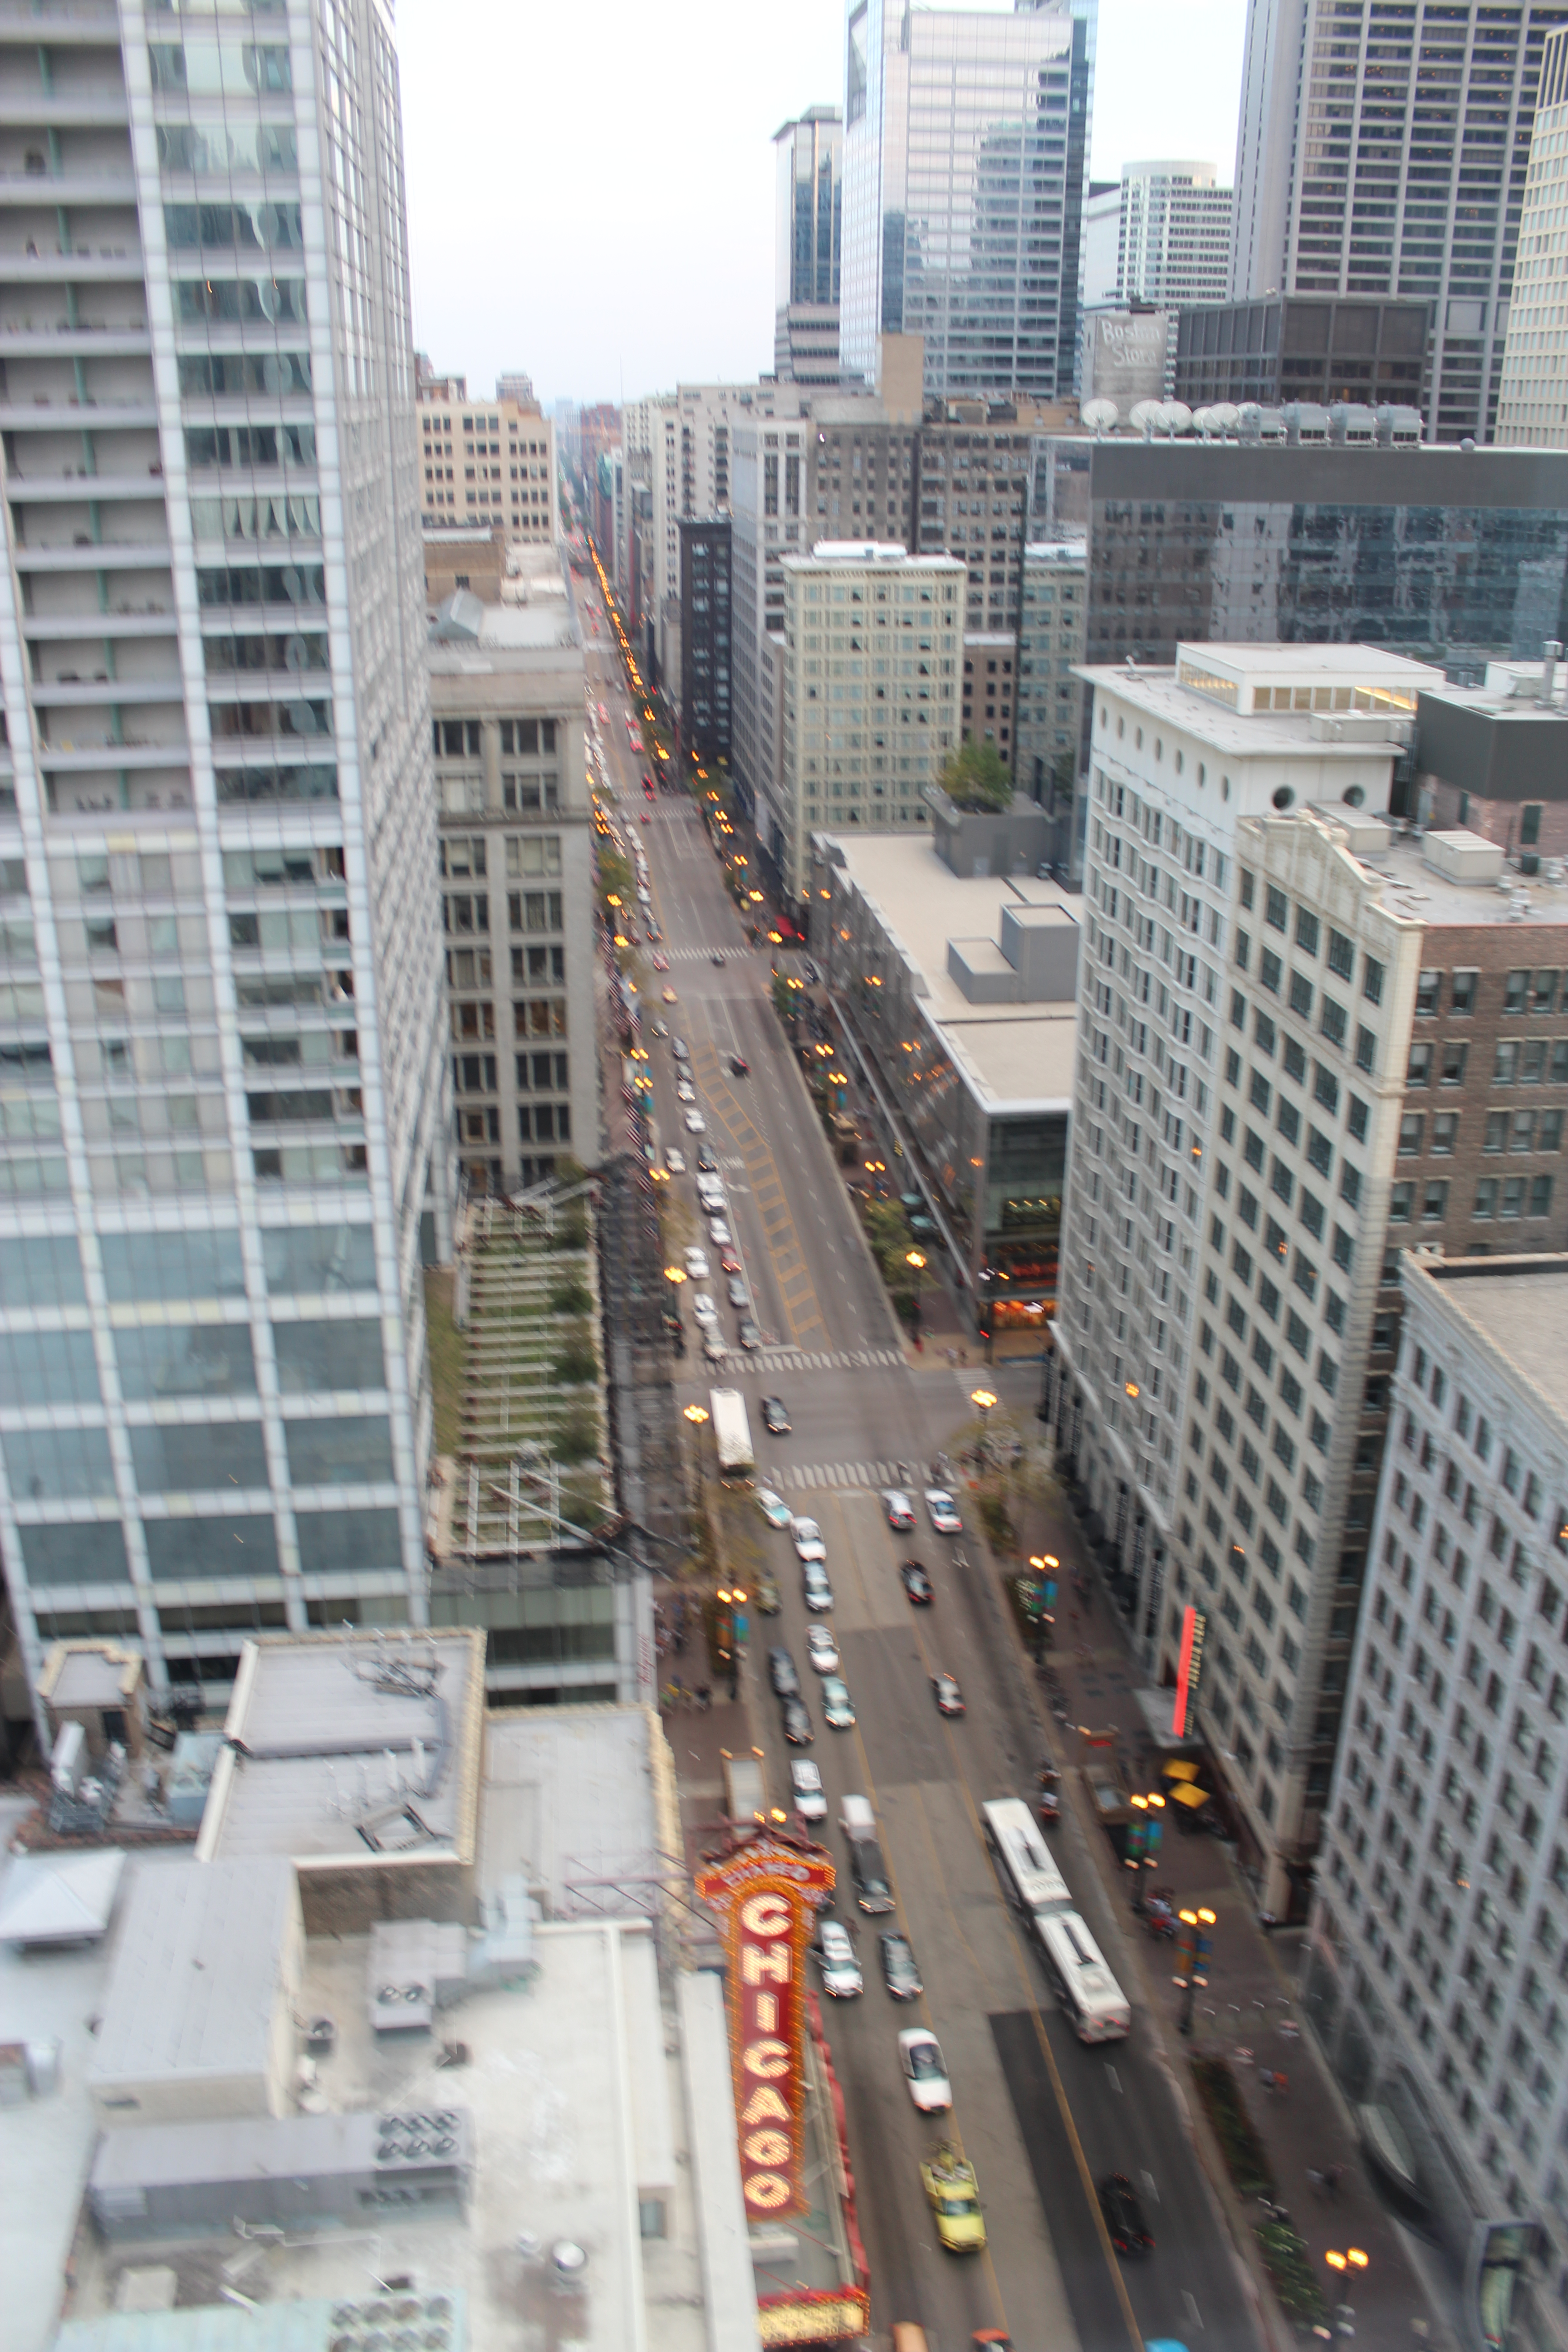 File:20120825 View Of State Street From Wit Roof Bar.JPG